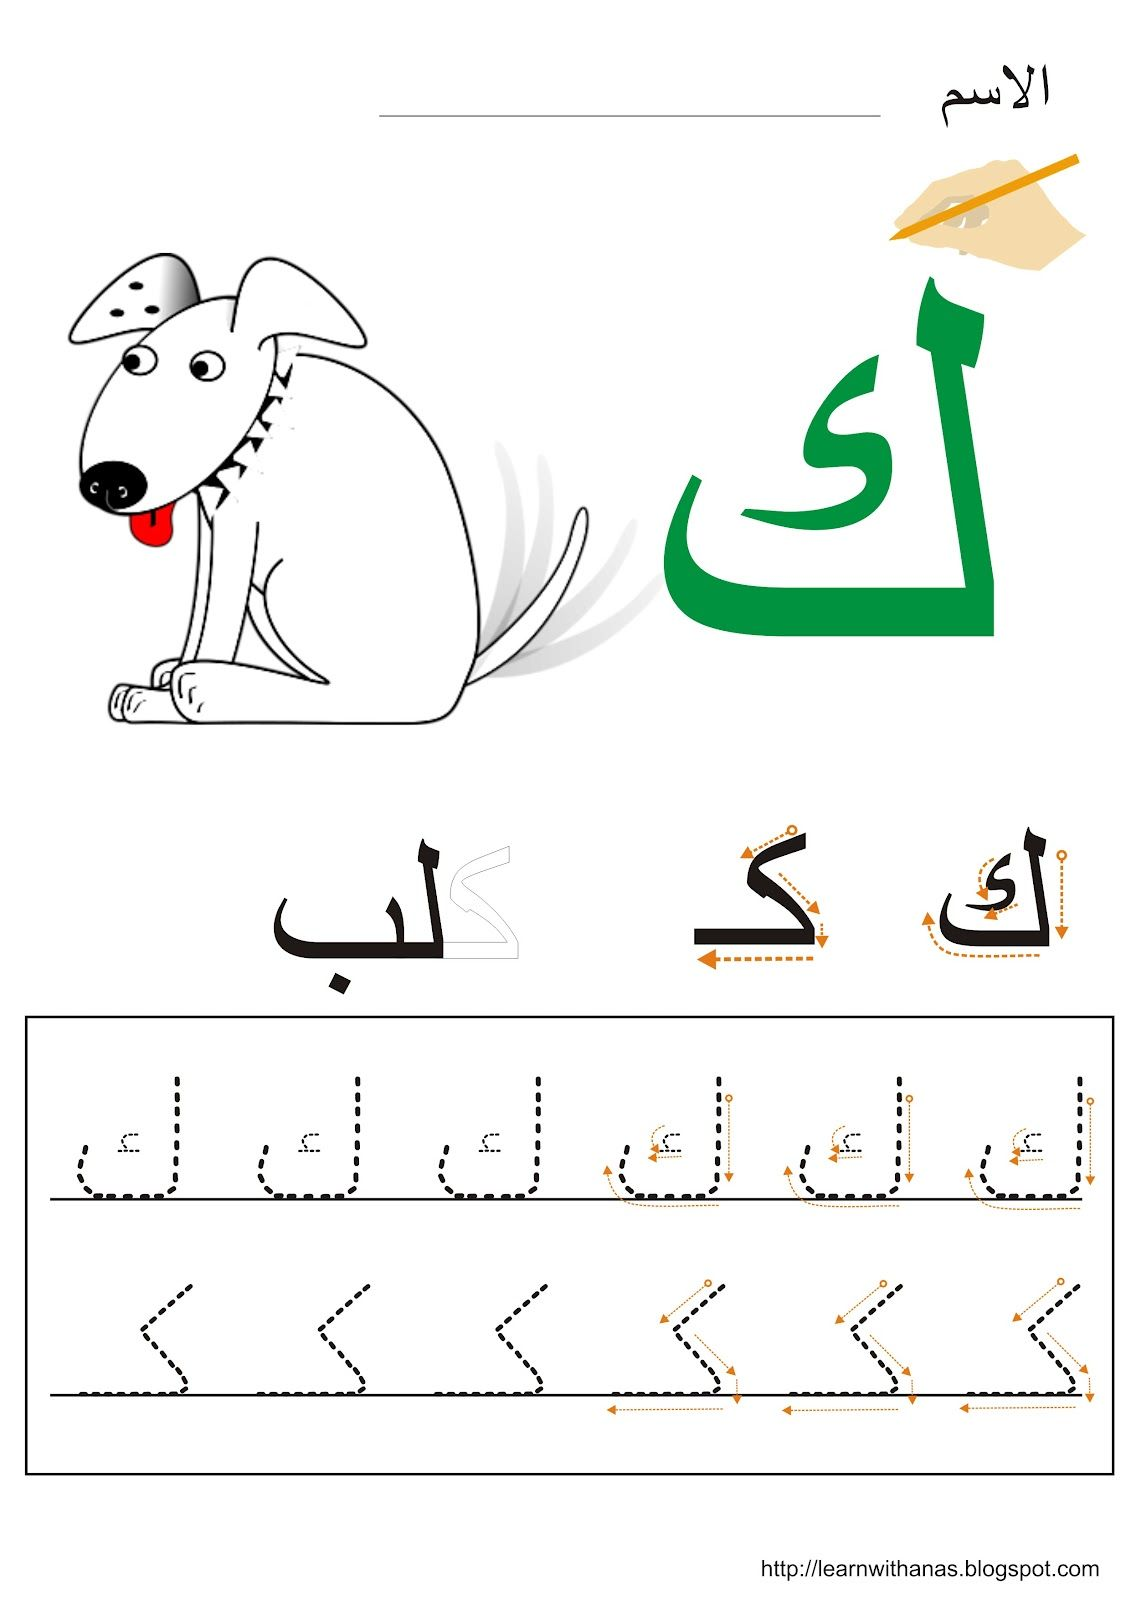 Kleurplaten Arabische Letters.تعلم مع أنس Arabisch Arabic Alphabet Letters Learn Arabic